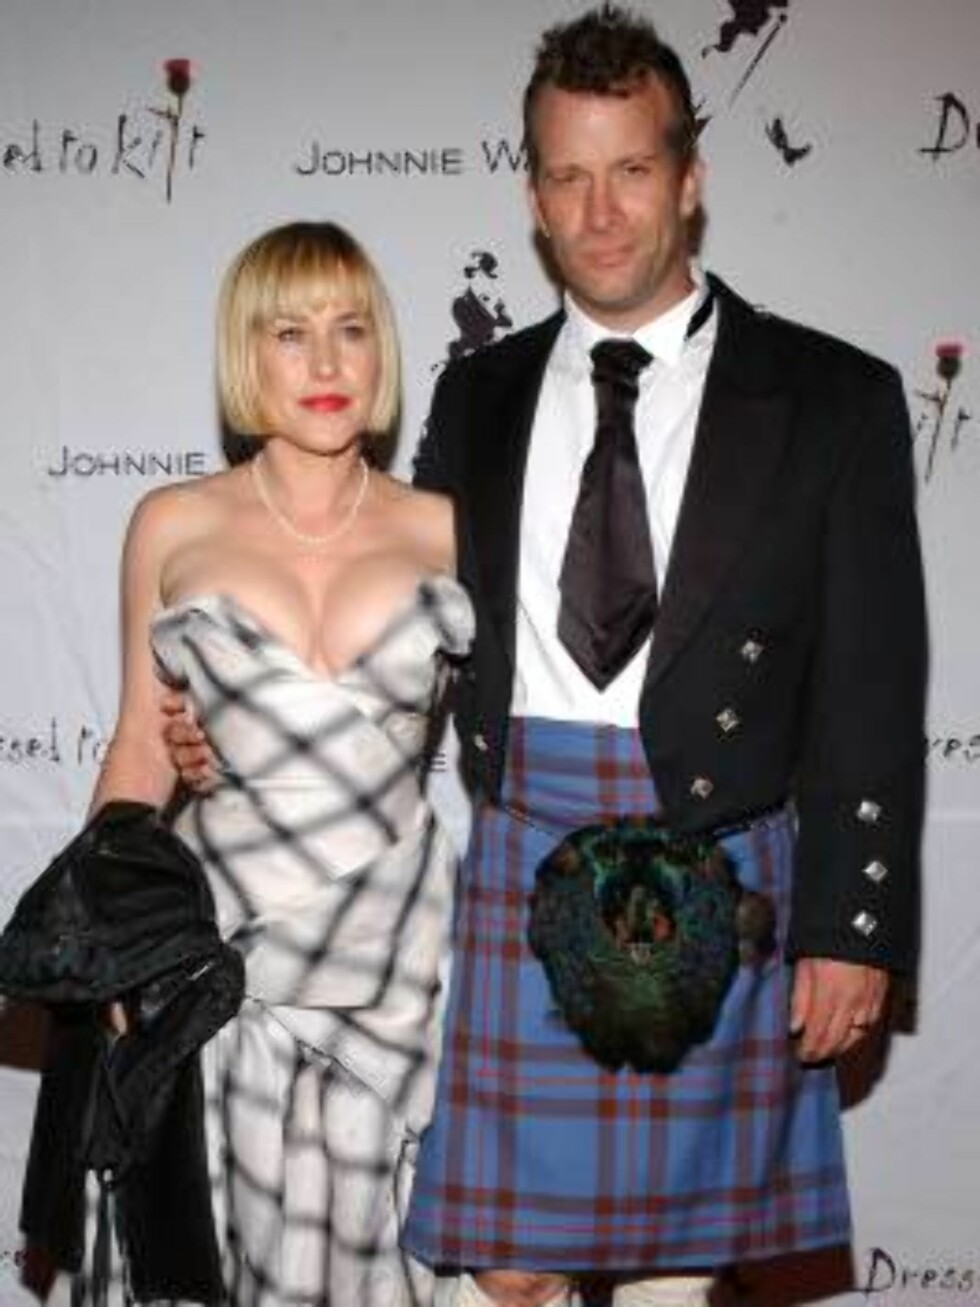 LOS ANGELES 2006-10-14  Thomas Jane, Patricia Arquette  attends the 2006 Dressed to  Kilt, an evening of Scottish fashion to kick-off the Mercedes-Benz fashion week. Los Angeles, October 14, 2006. (Pictured: Thomas Jane, Patricia Arquette  ).   Photo: Lio Foto: Stella Pictures